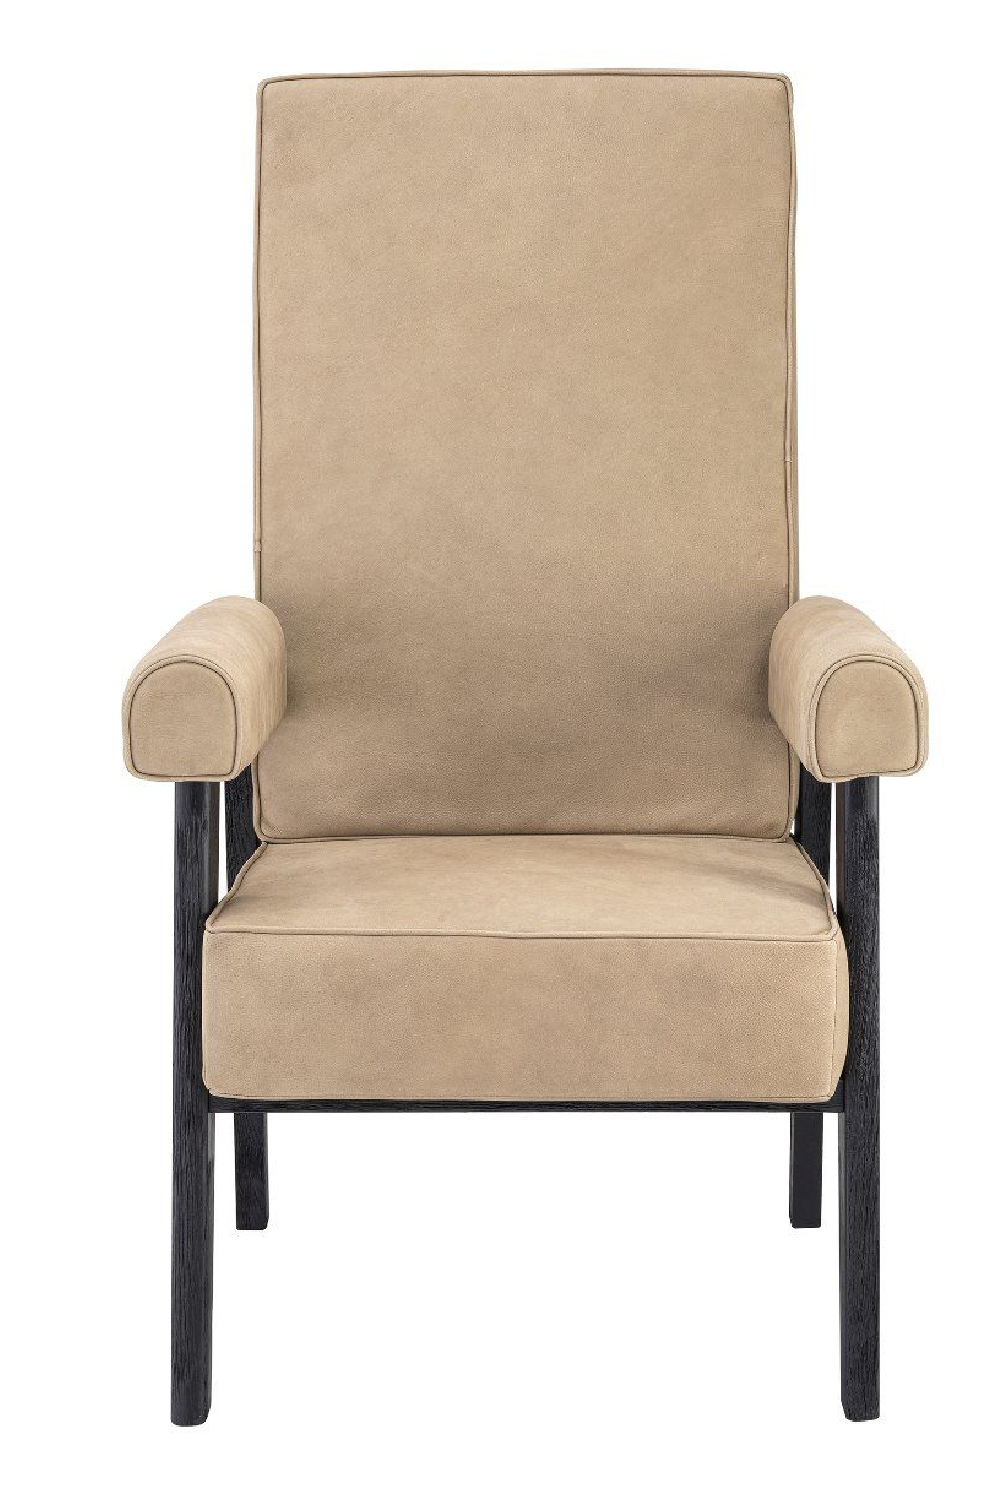 Beige High-Back Chair | Eichholtz Milo